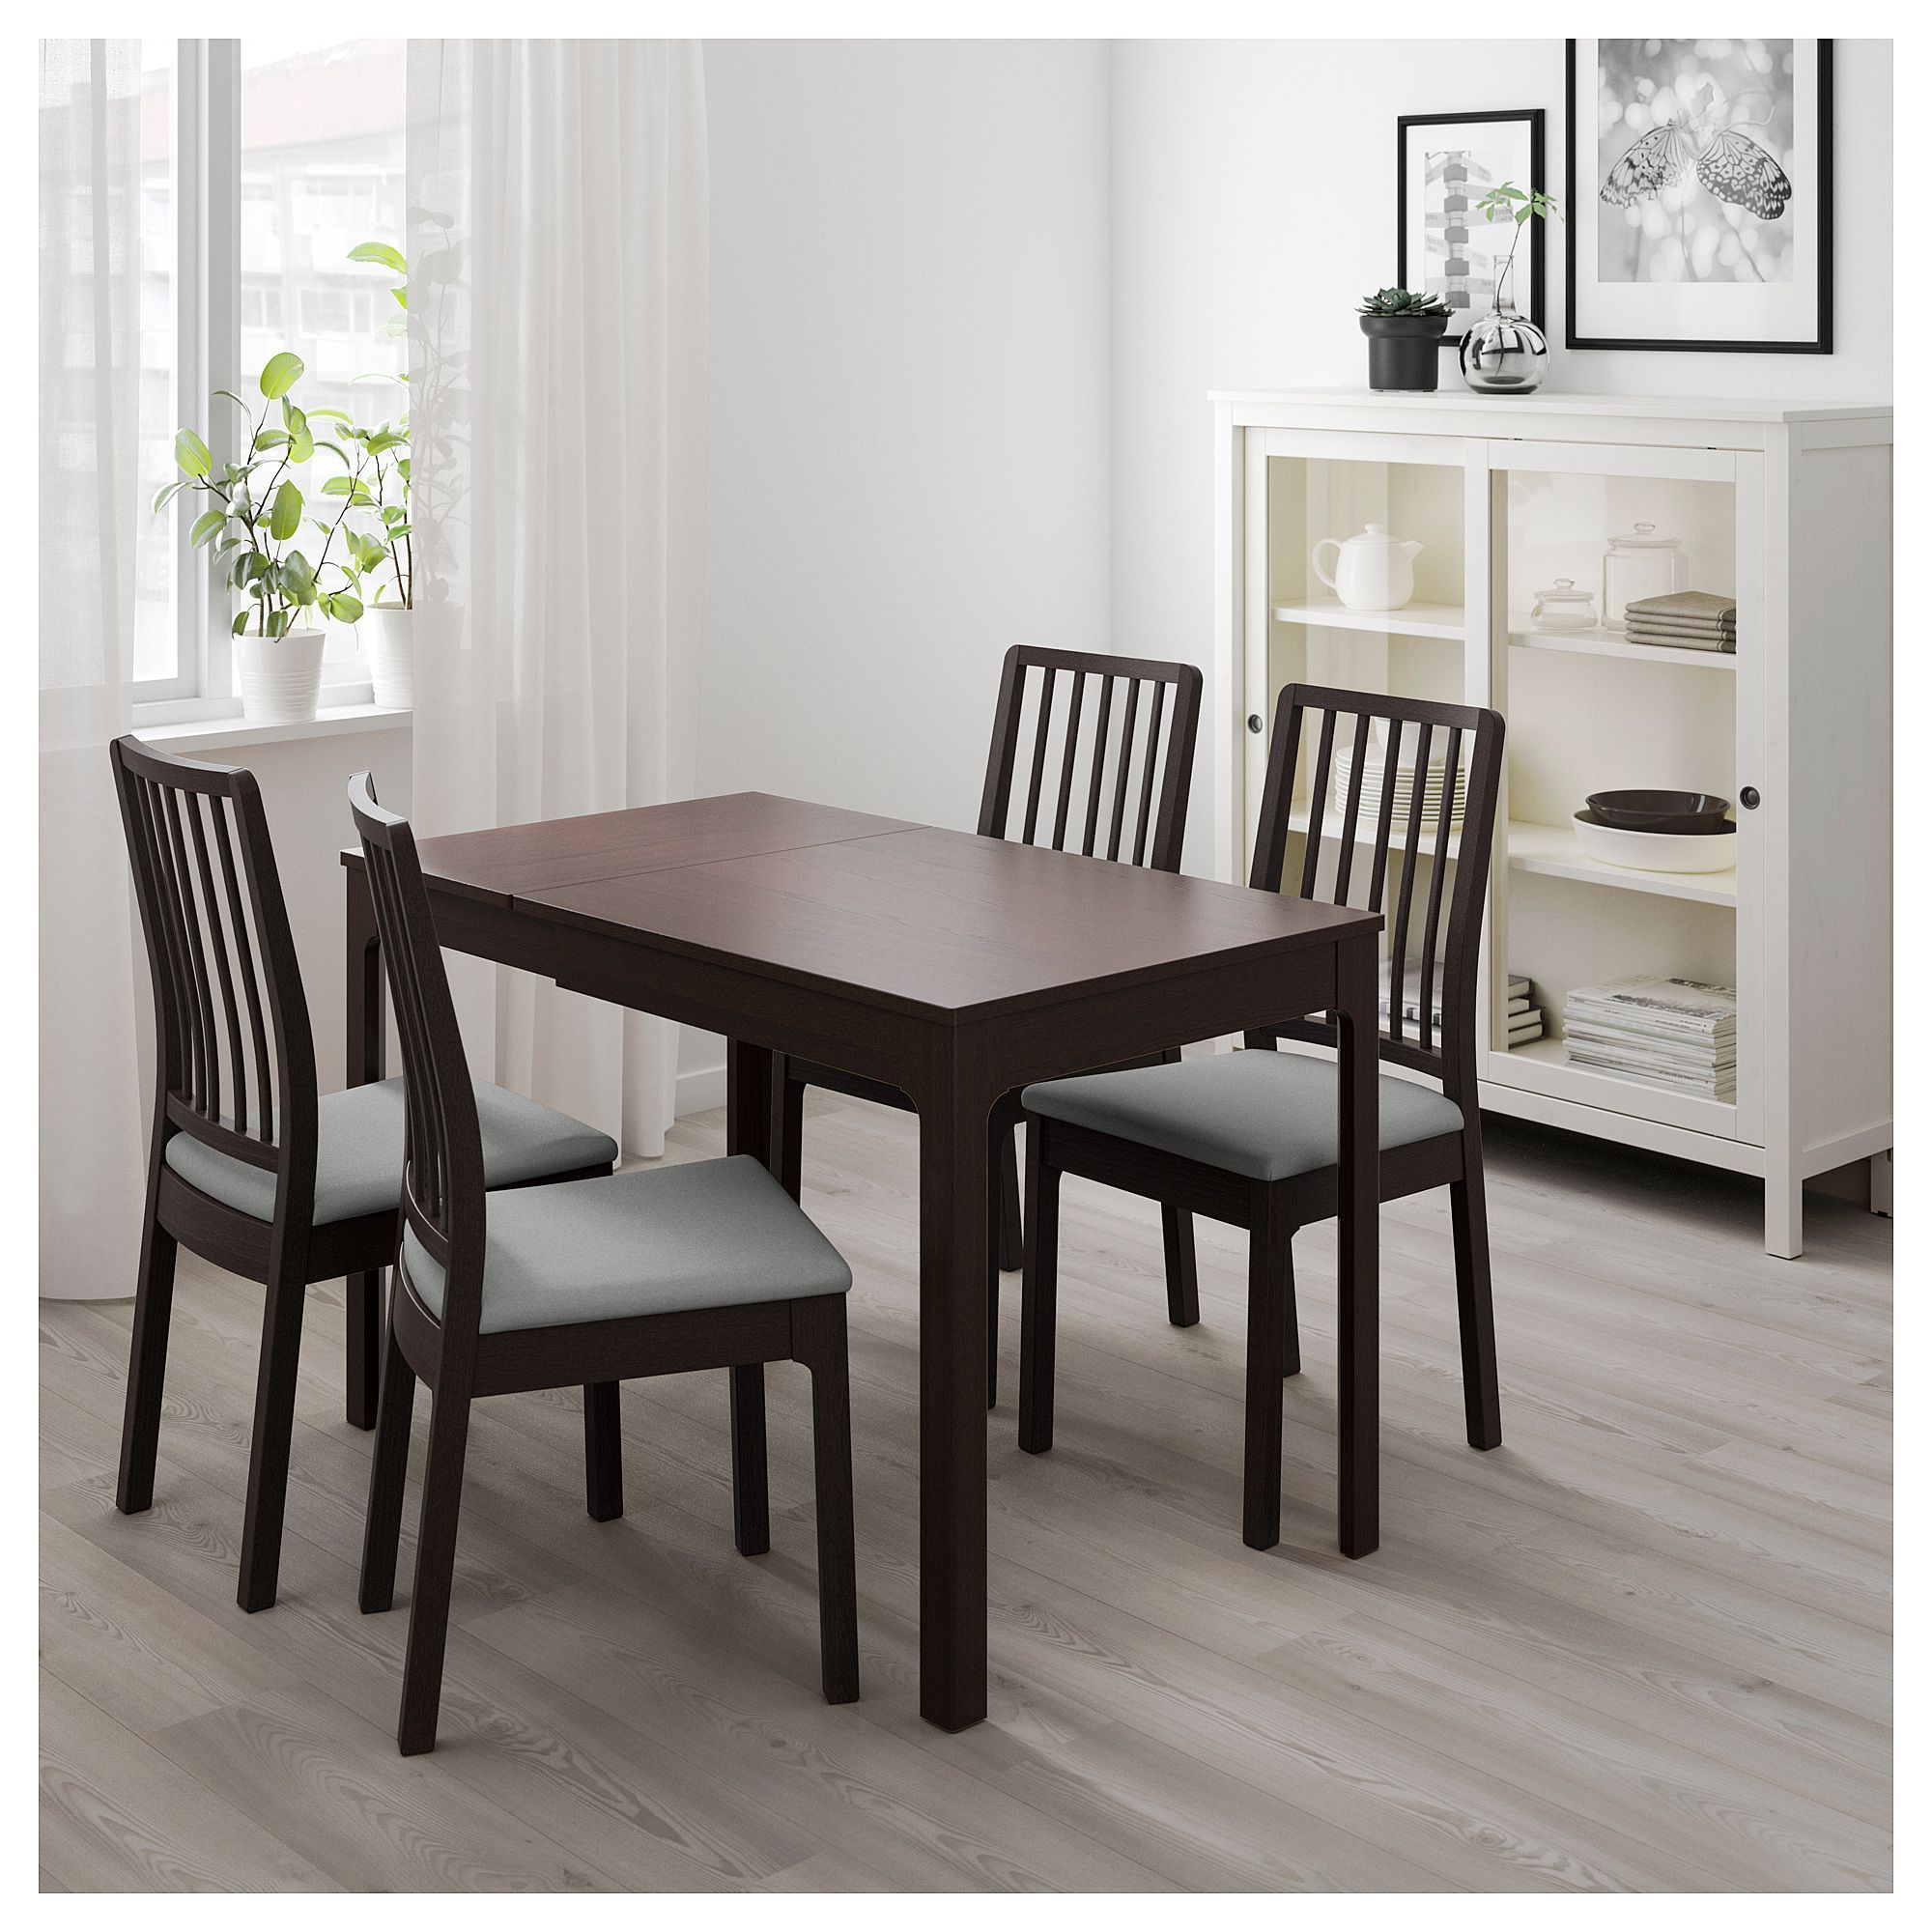 Ekedalen Extendable Table Dark Brown Ikea Ikea Dining Table Set